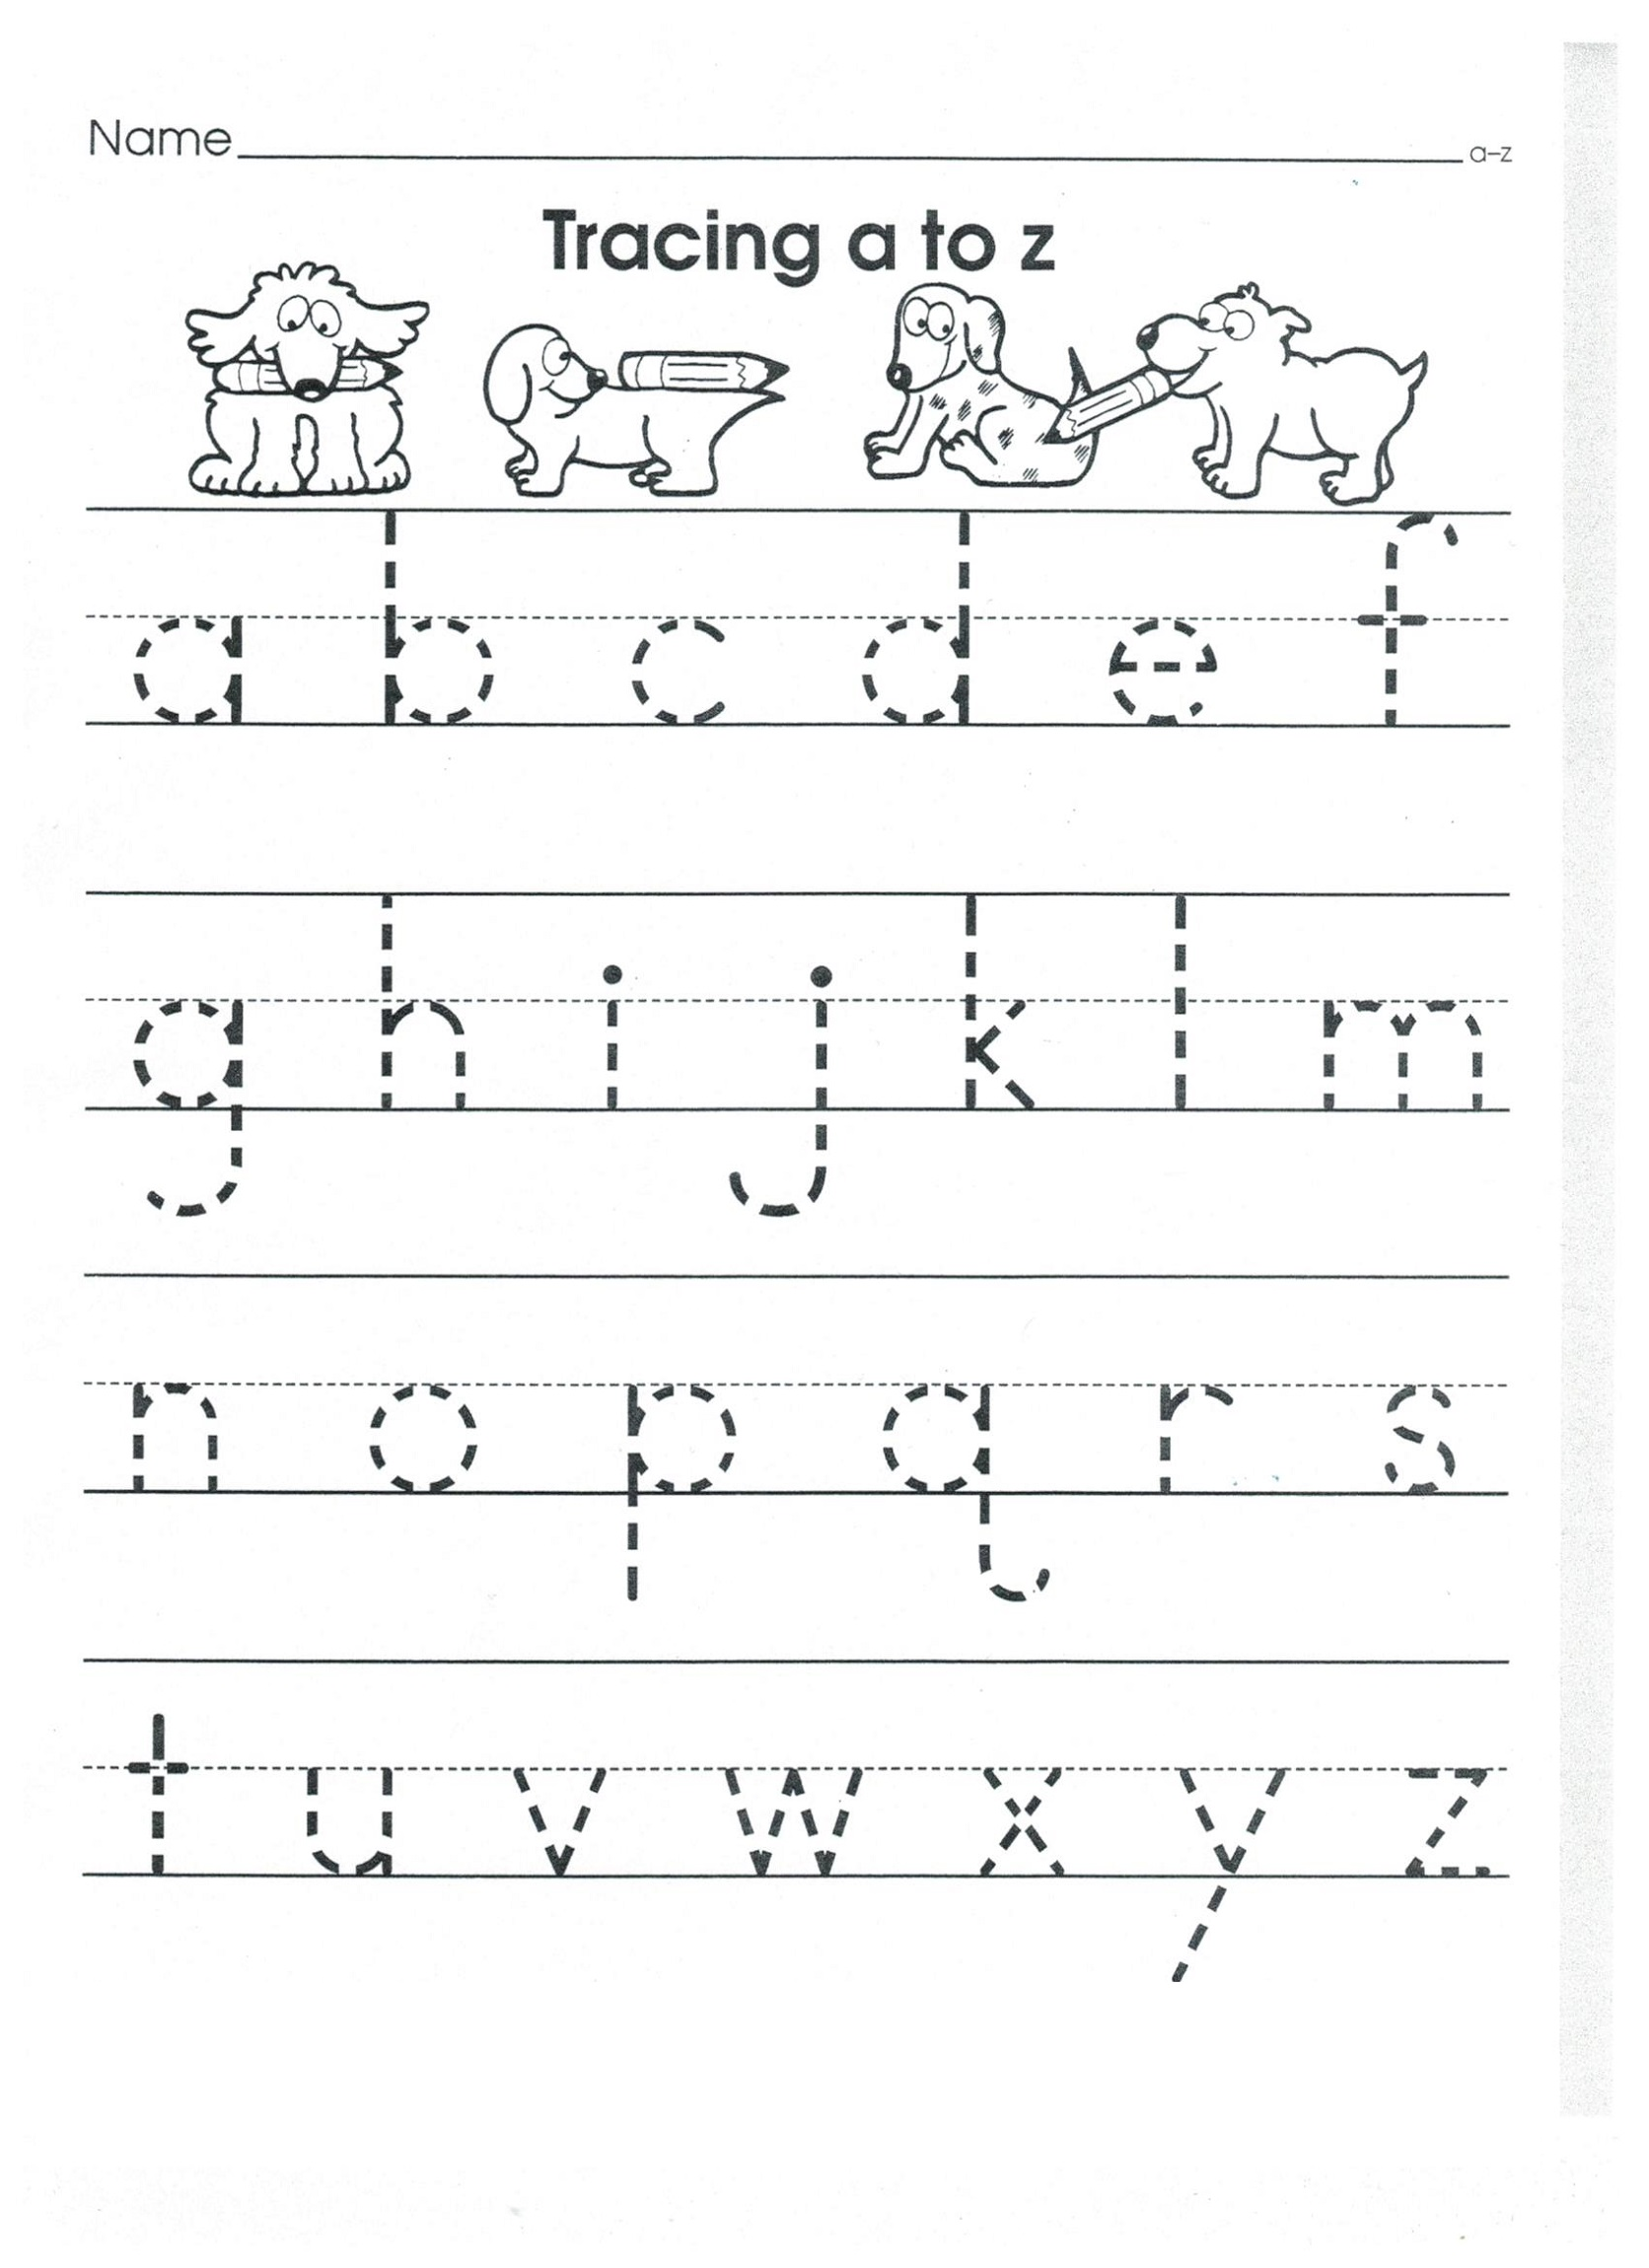 Practice Writing Lowercase Letter Worksheets